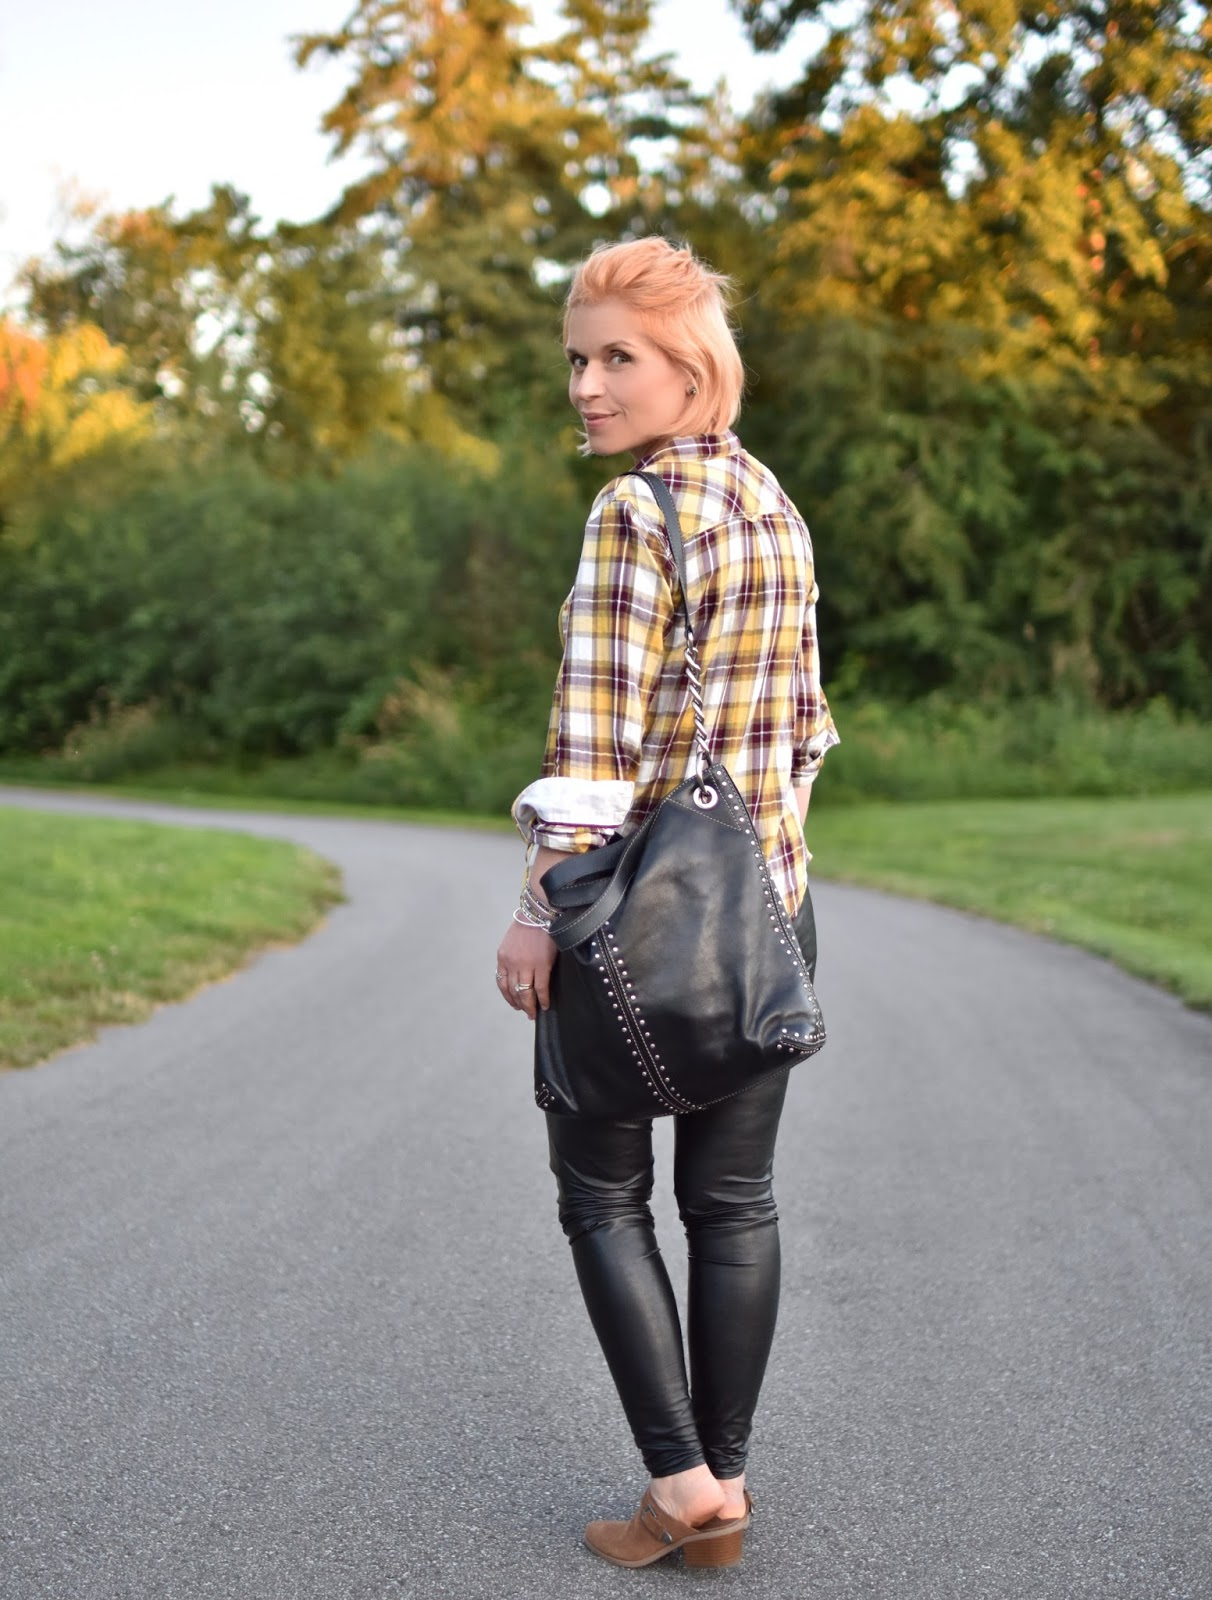 styling vegan leather leggings with a slouchy tee, plaid shirt, and AEO western-inspired mules